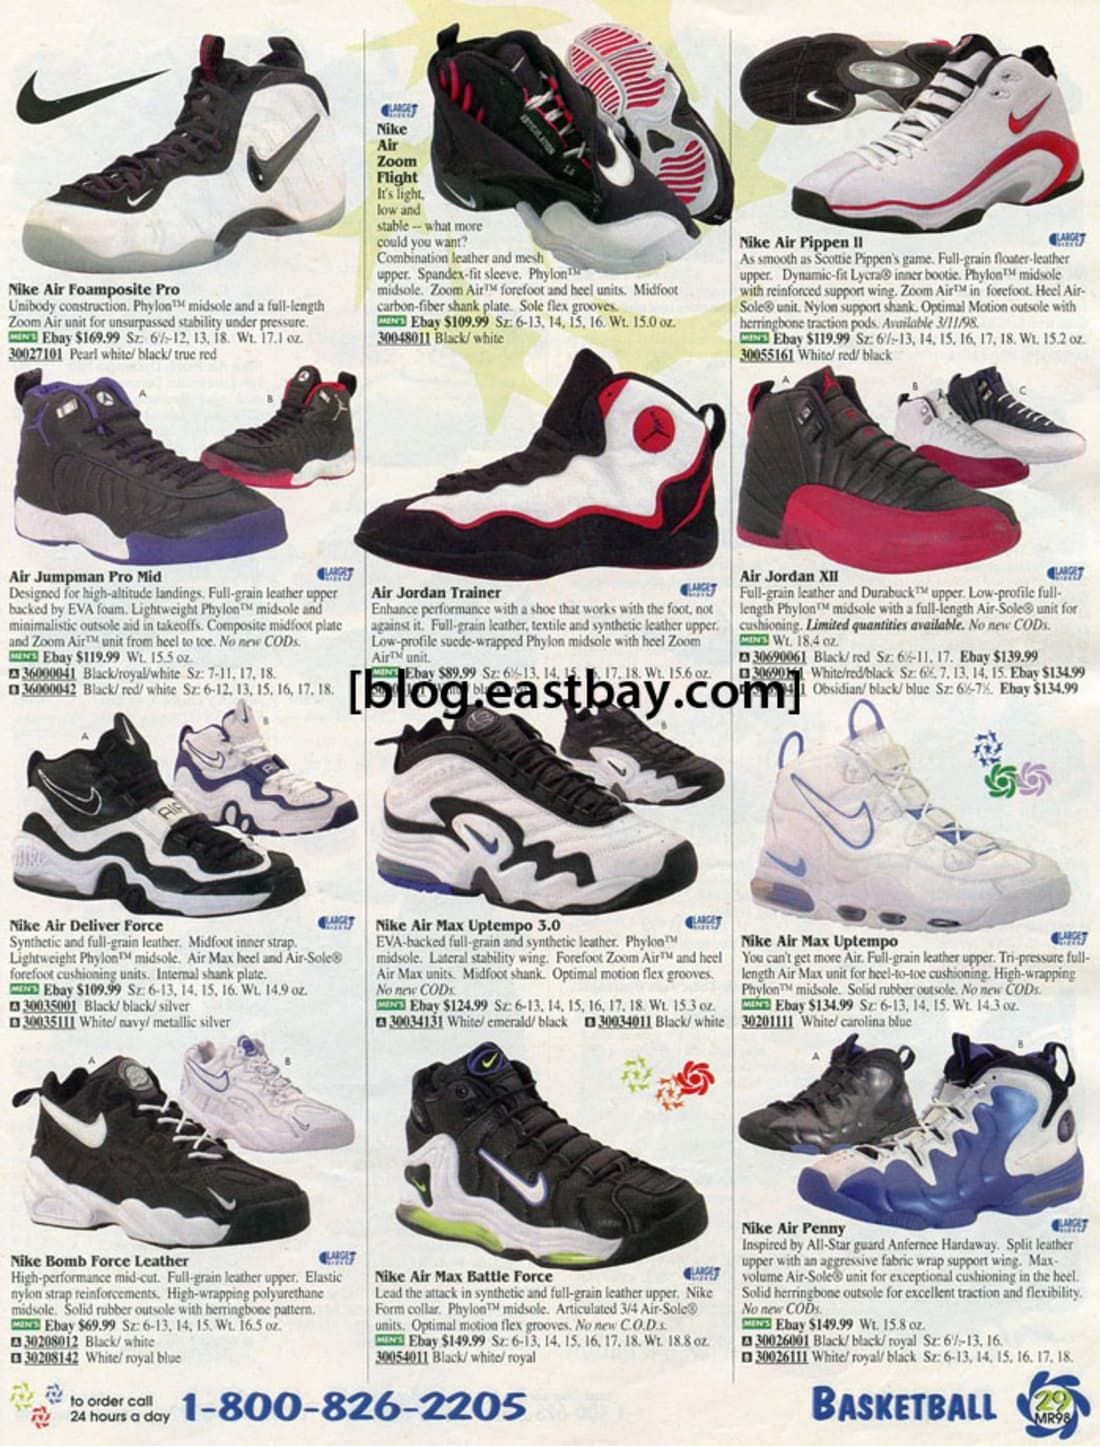 Nike Zoom Flight Glove - 25 Classic Sneakers From Vintage Eastbay Catalogs   Complex